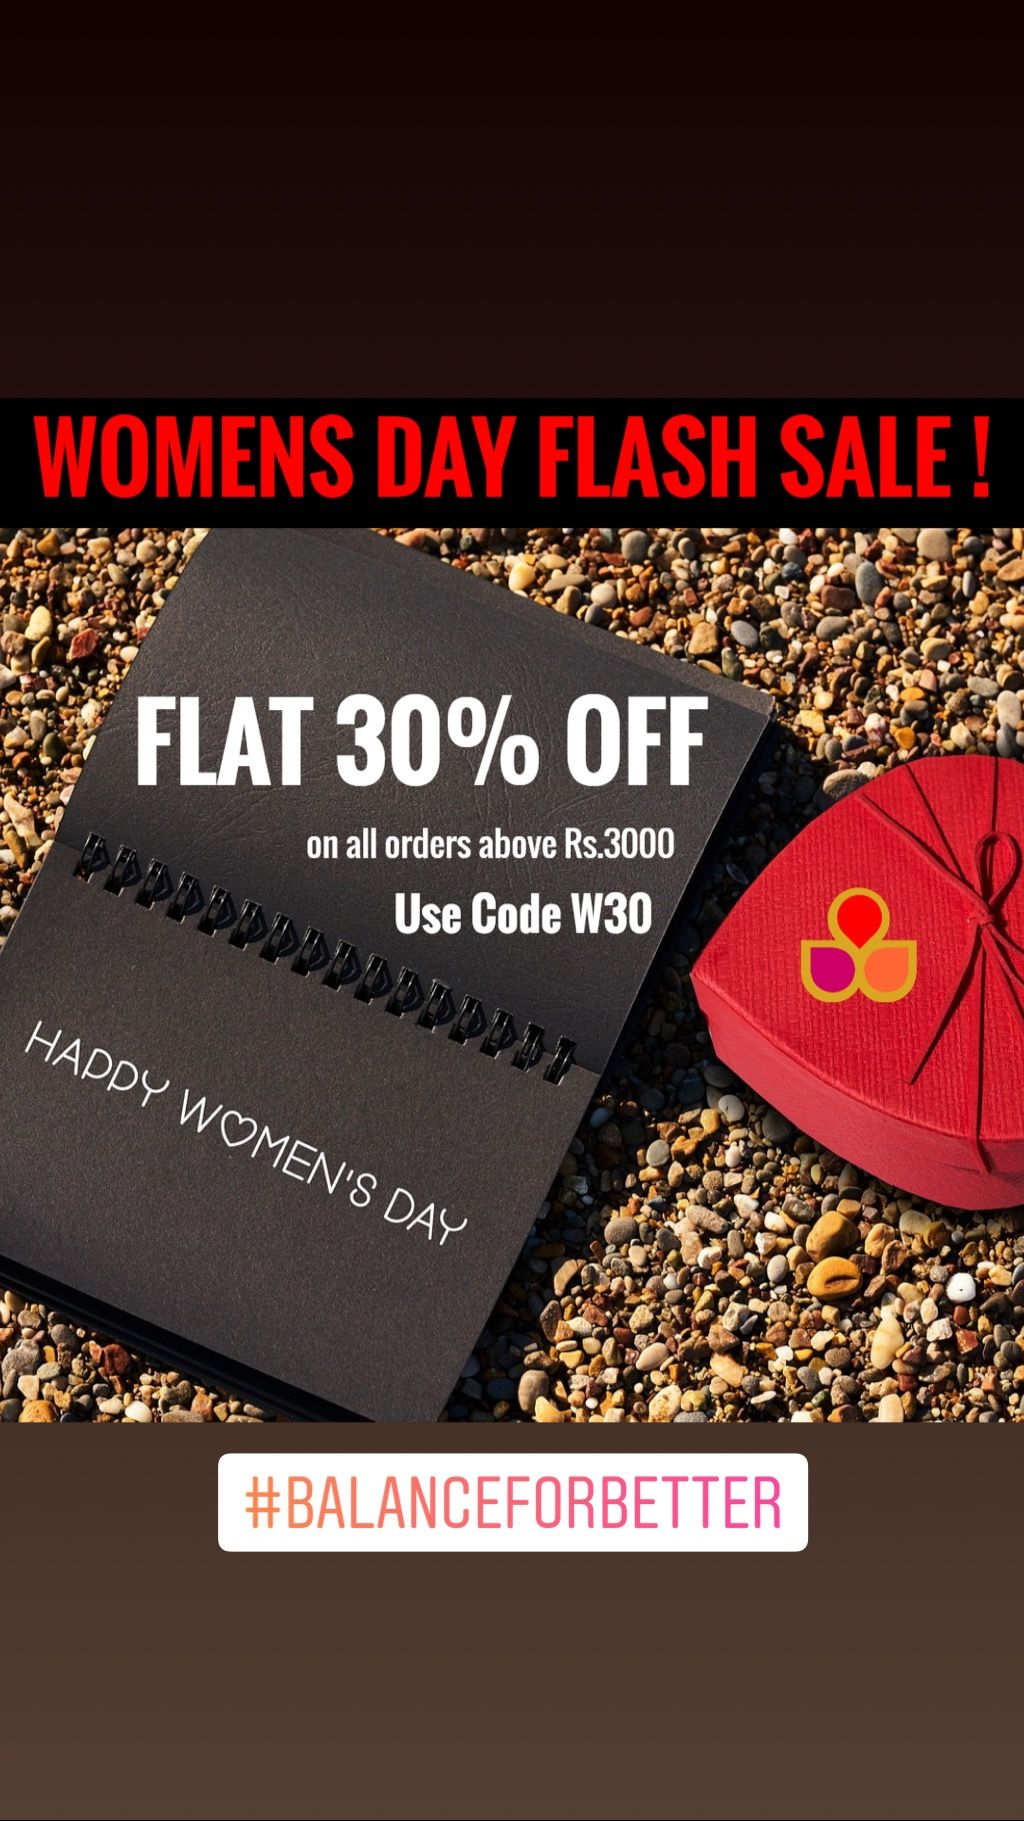 1b9096a3651 SPECIAL WOMENS DAY GIFT from anokherang for all our Lovely Ladies 😍😍😍  Enjoy FLAT